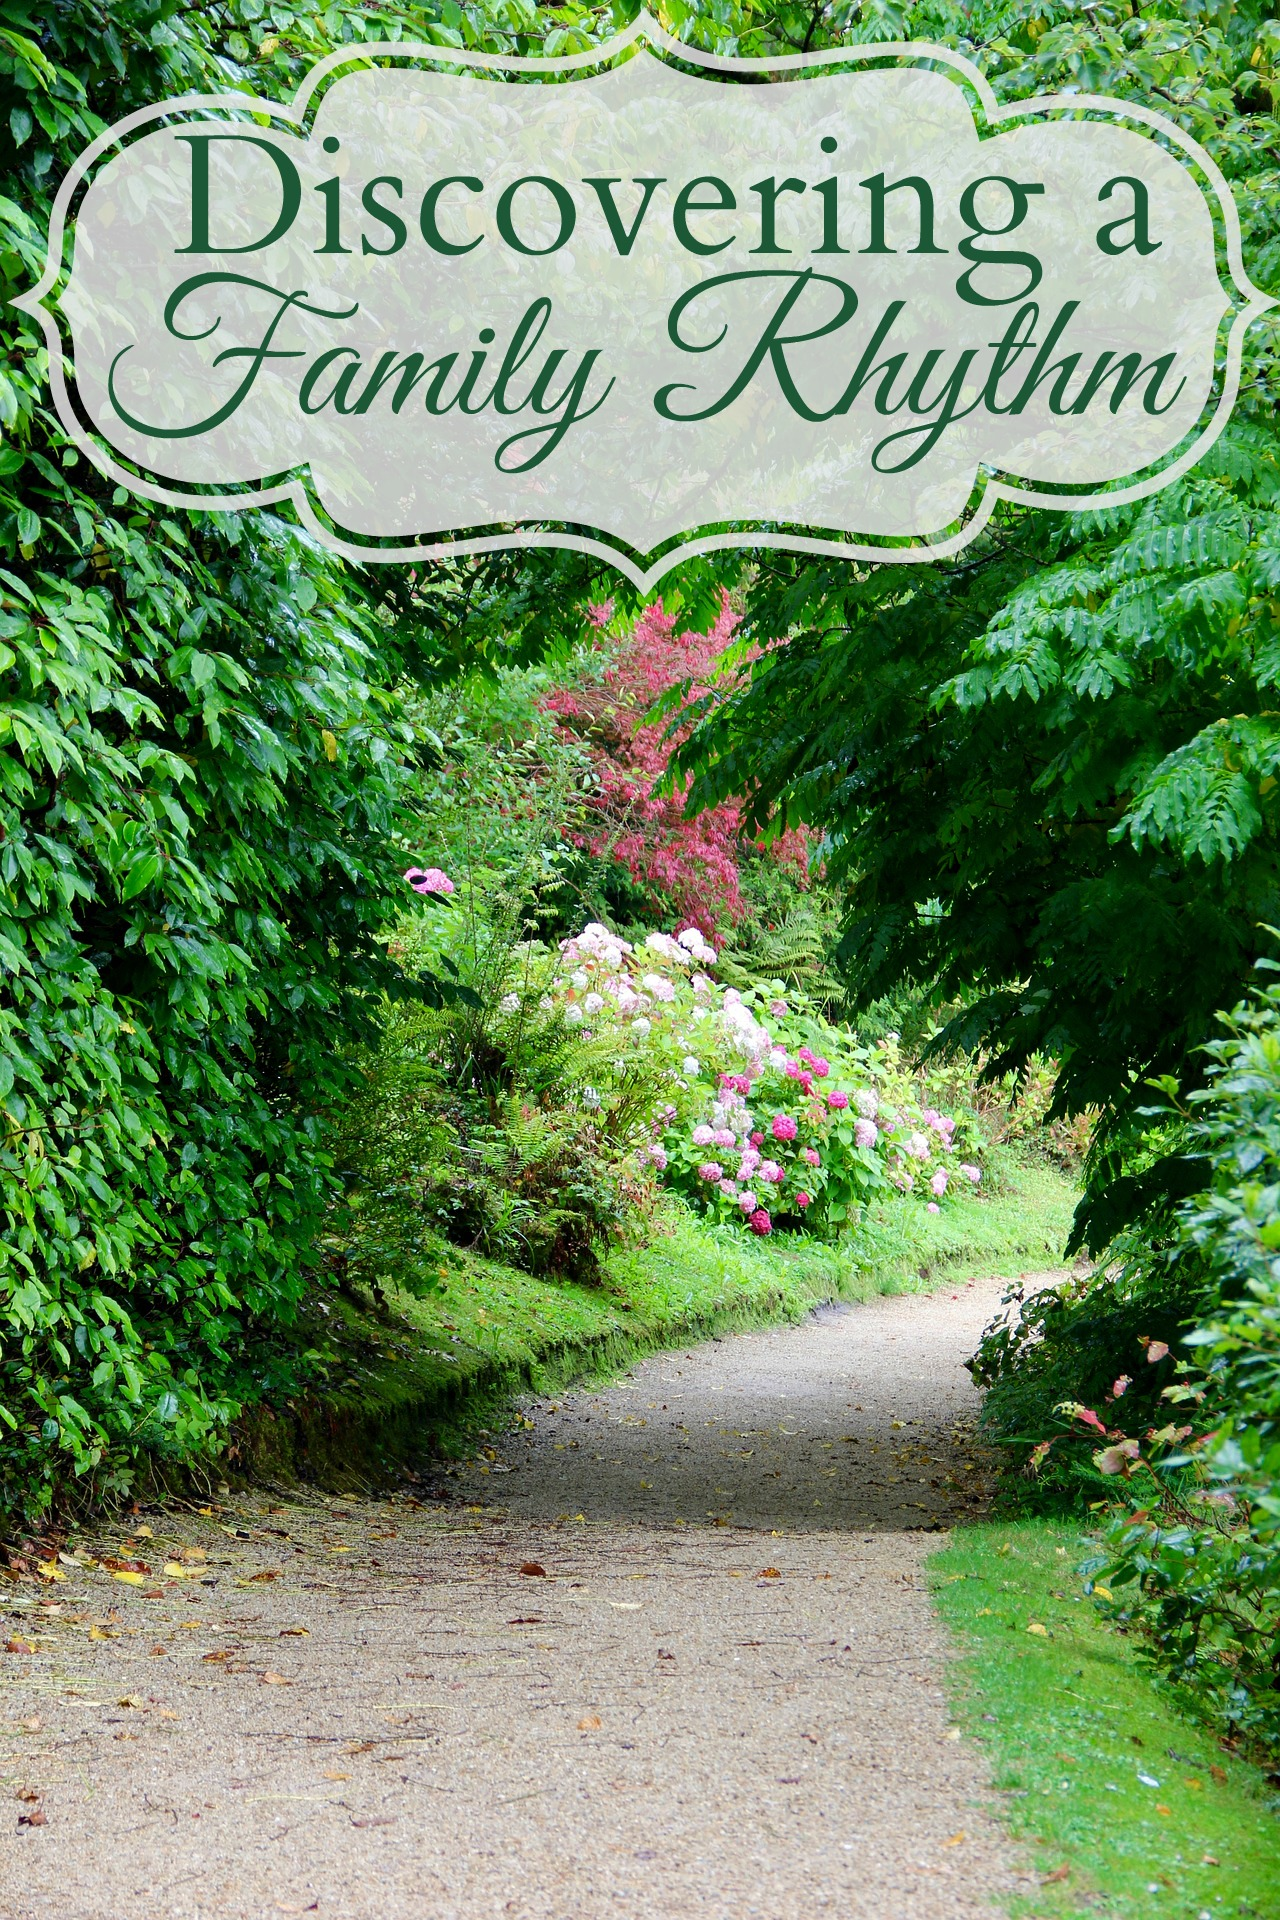 Discovering a Family Rhythm - Rhythm is very different from a schedule – rhythm supports our physical, emotional, and spiritual needs. Schedules dictate. Rhythms flow and breath, schedules are tight and strict.